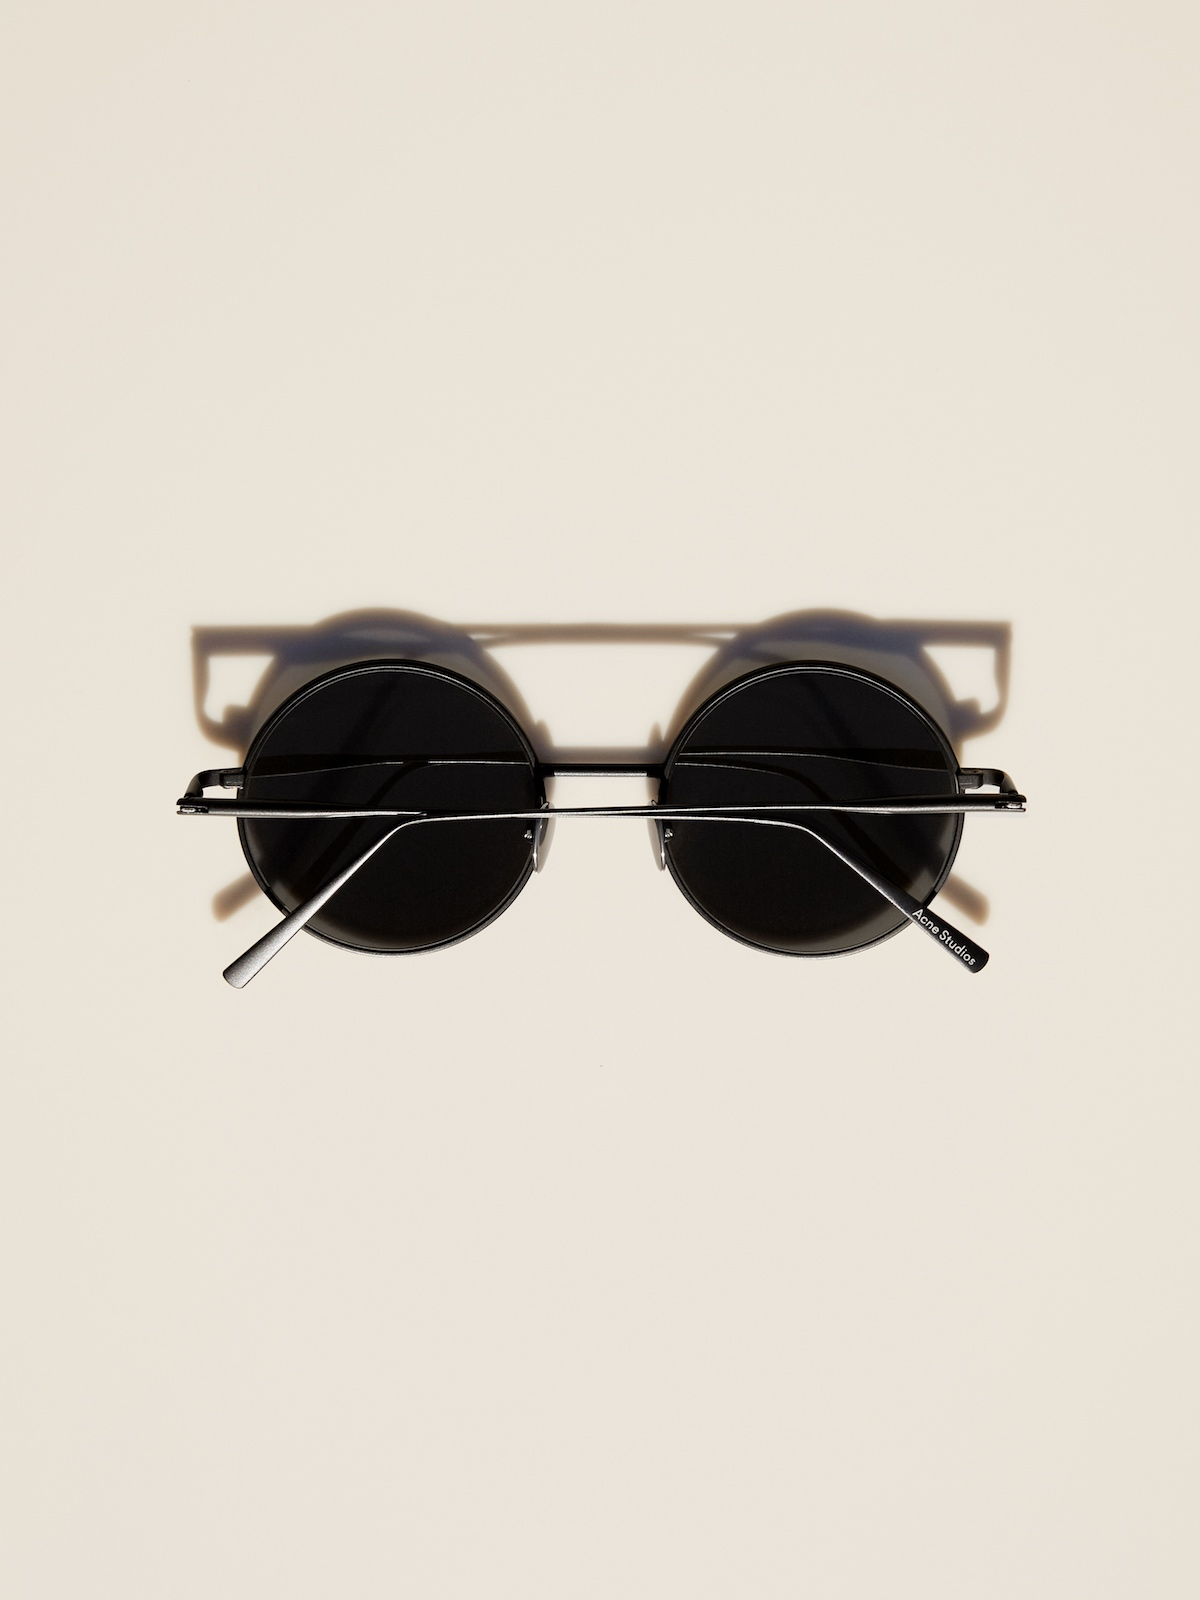 Acne Studios' 'Scientist' frames